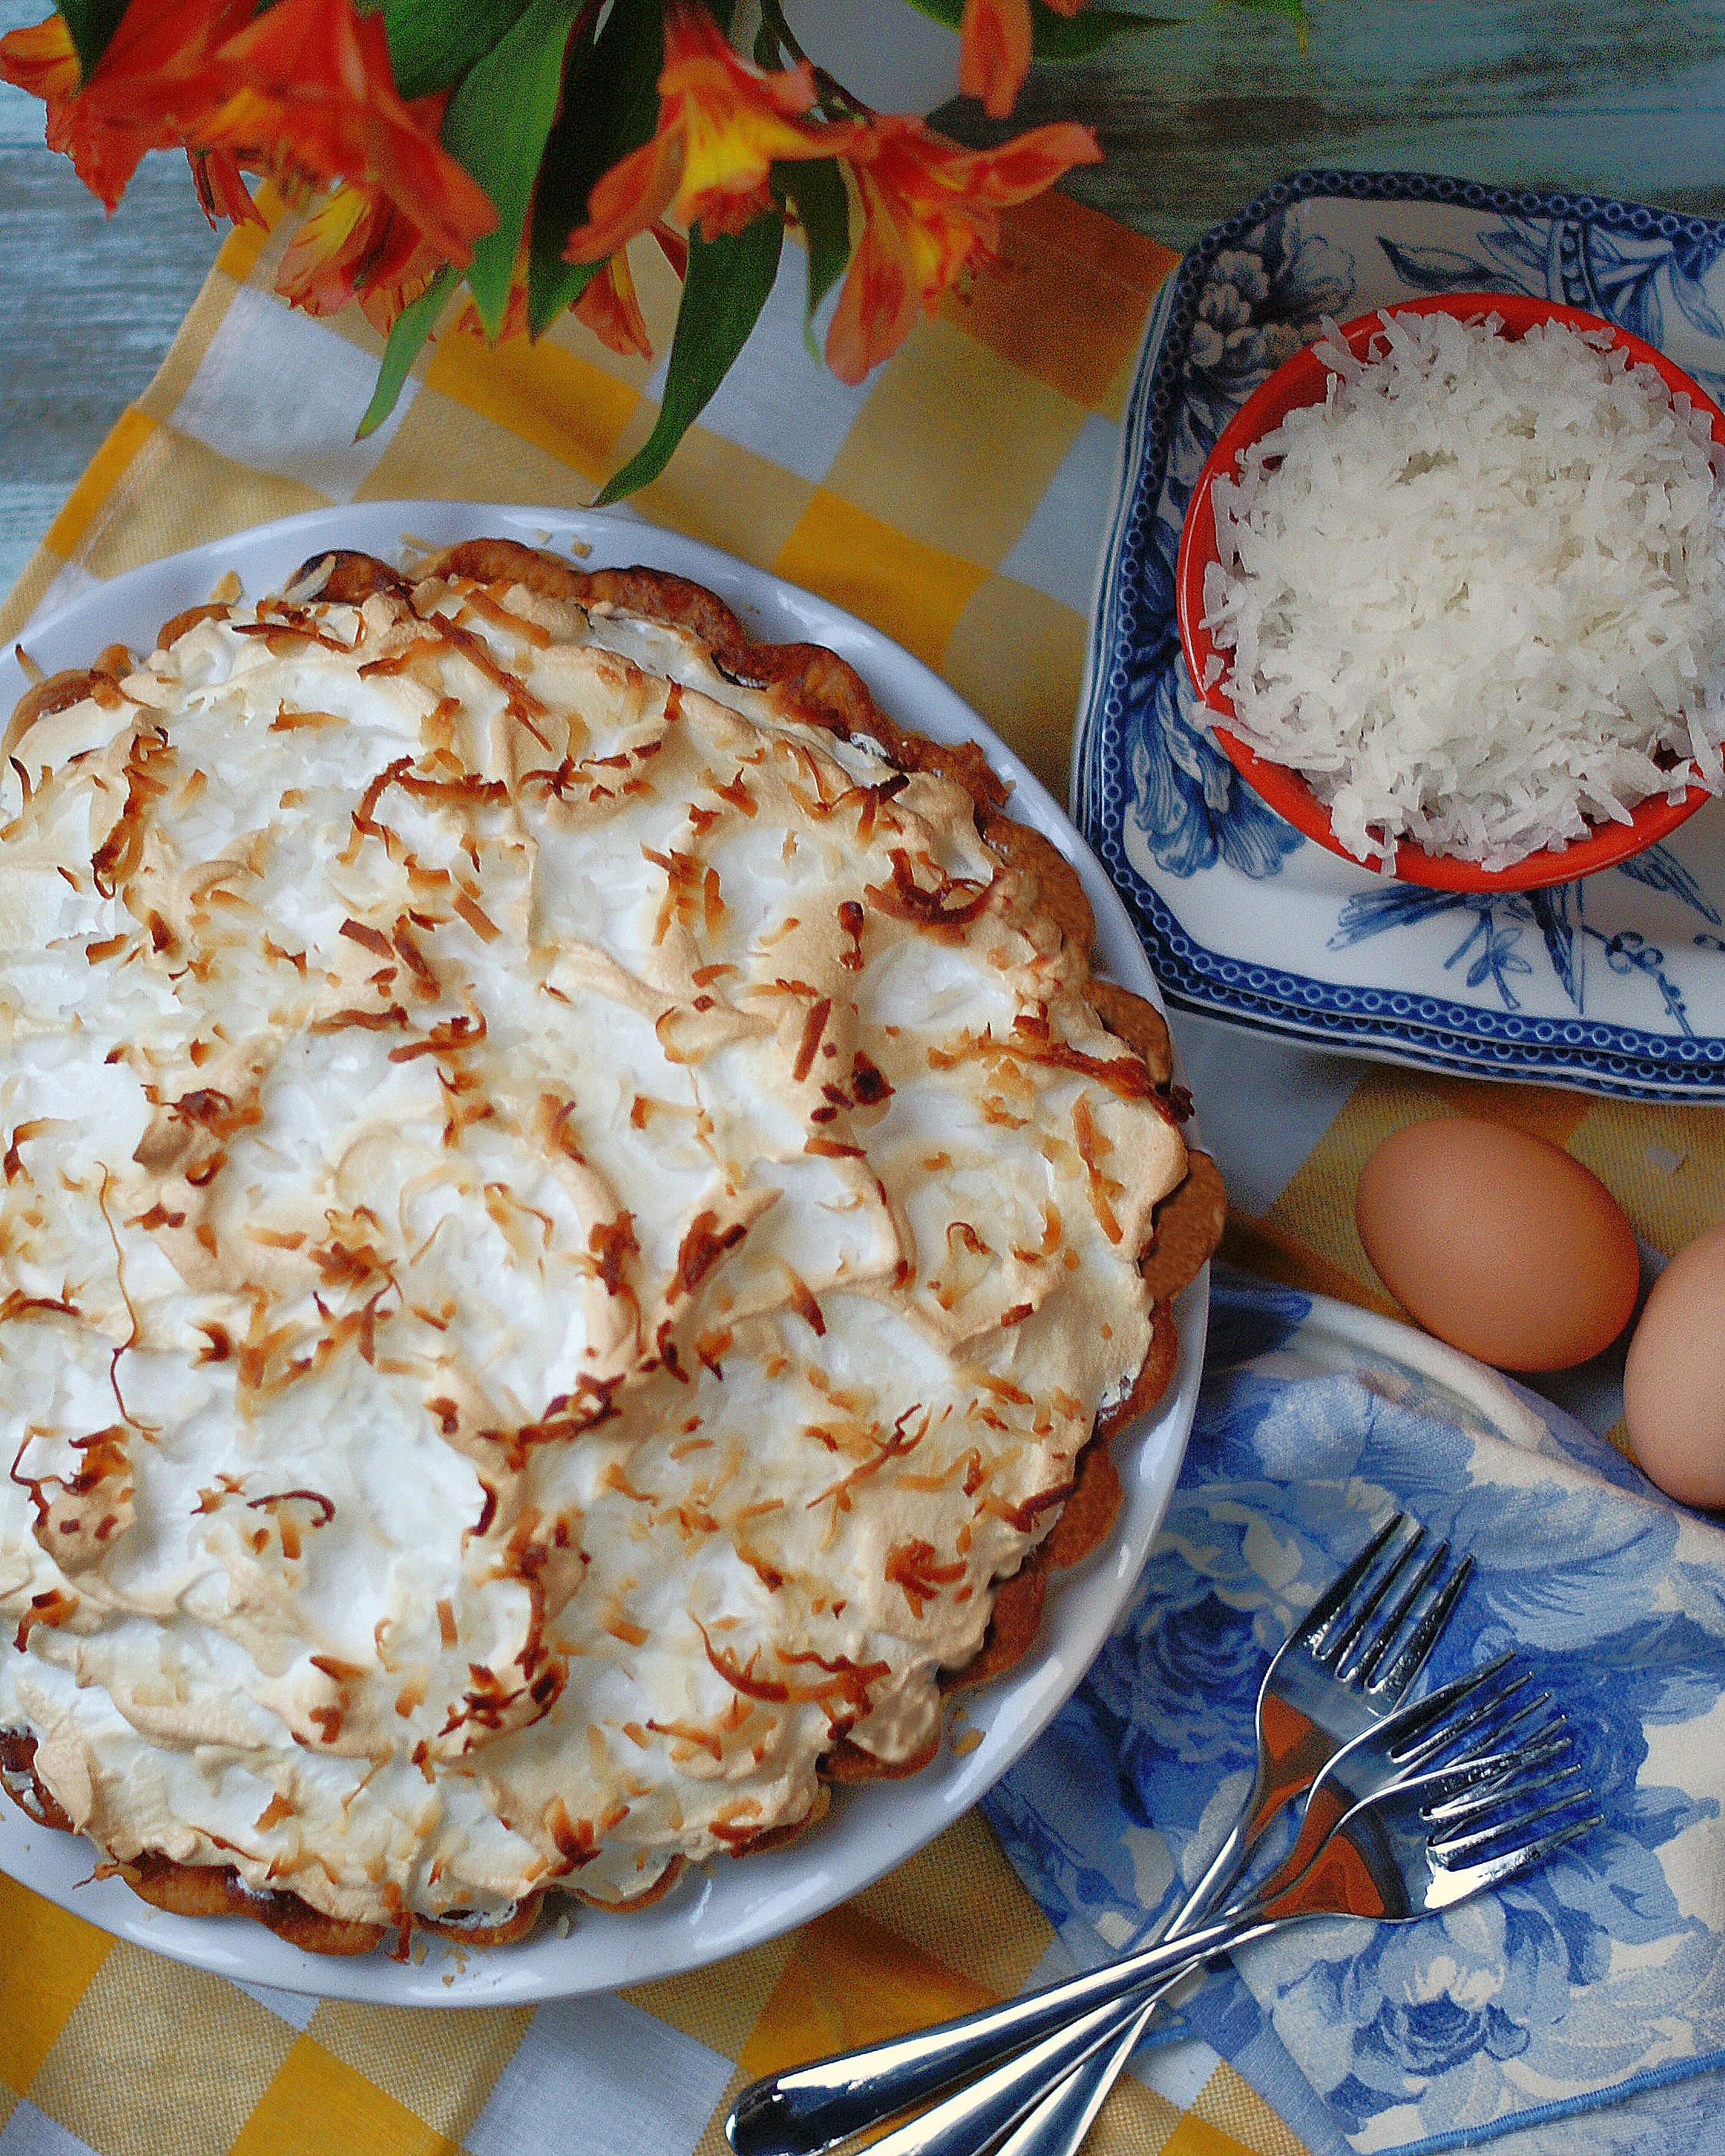 An aerial view of an old fashioned coconut cream pie with meringue complimented by blue and yellow napkins and 3 dessert forks.